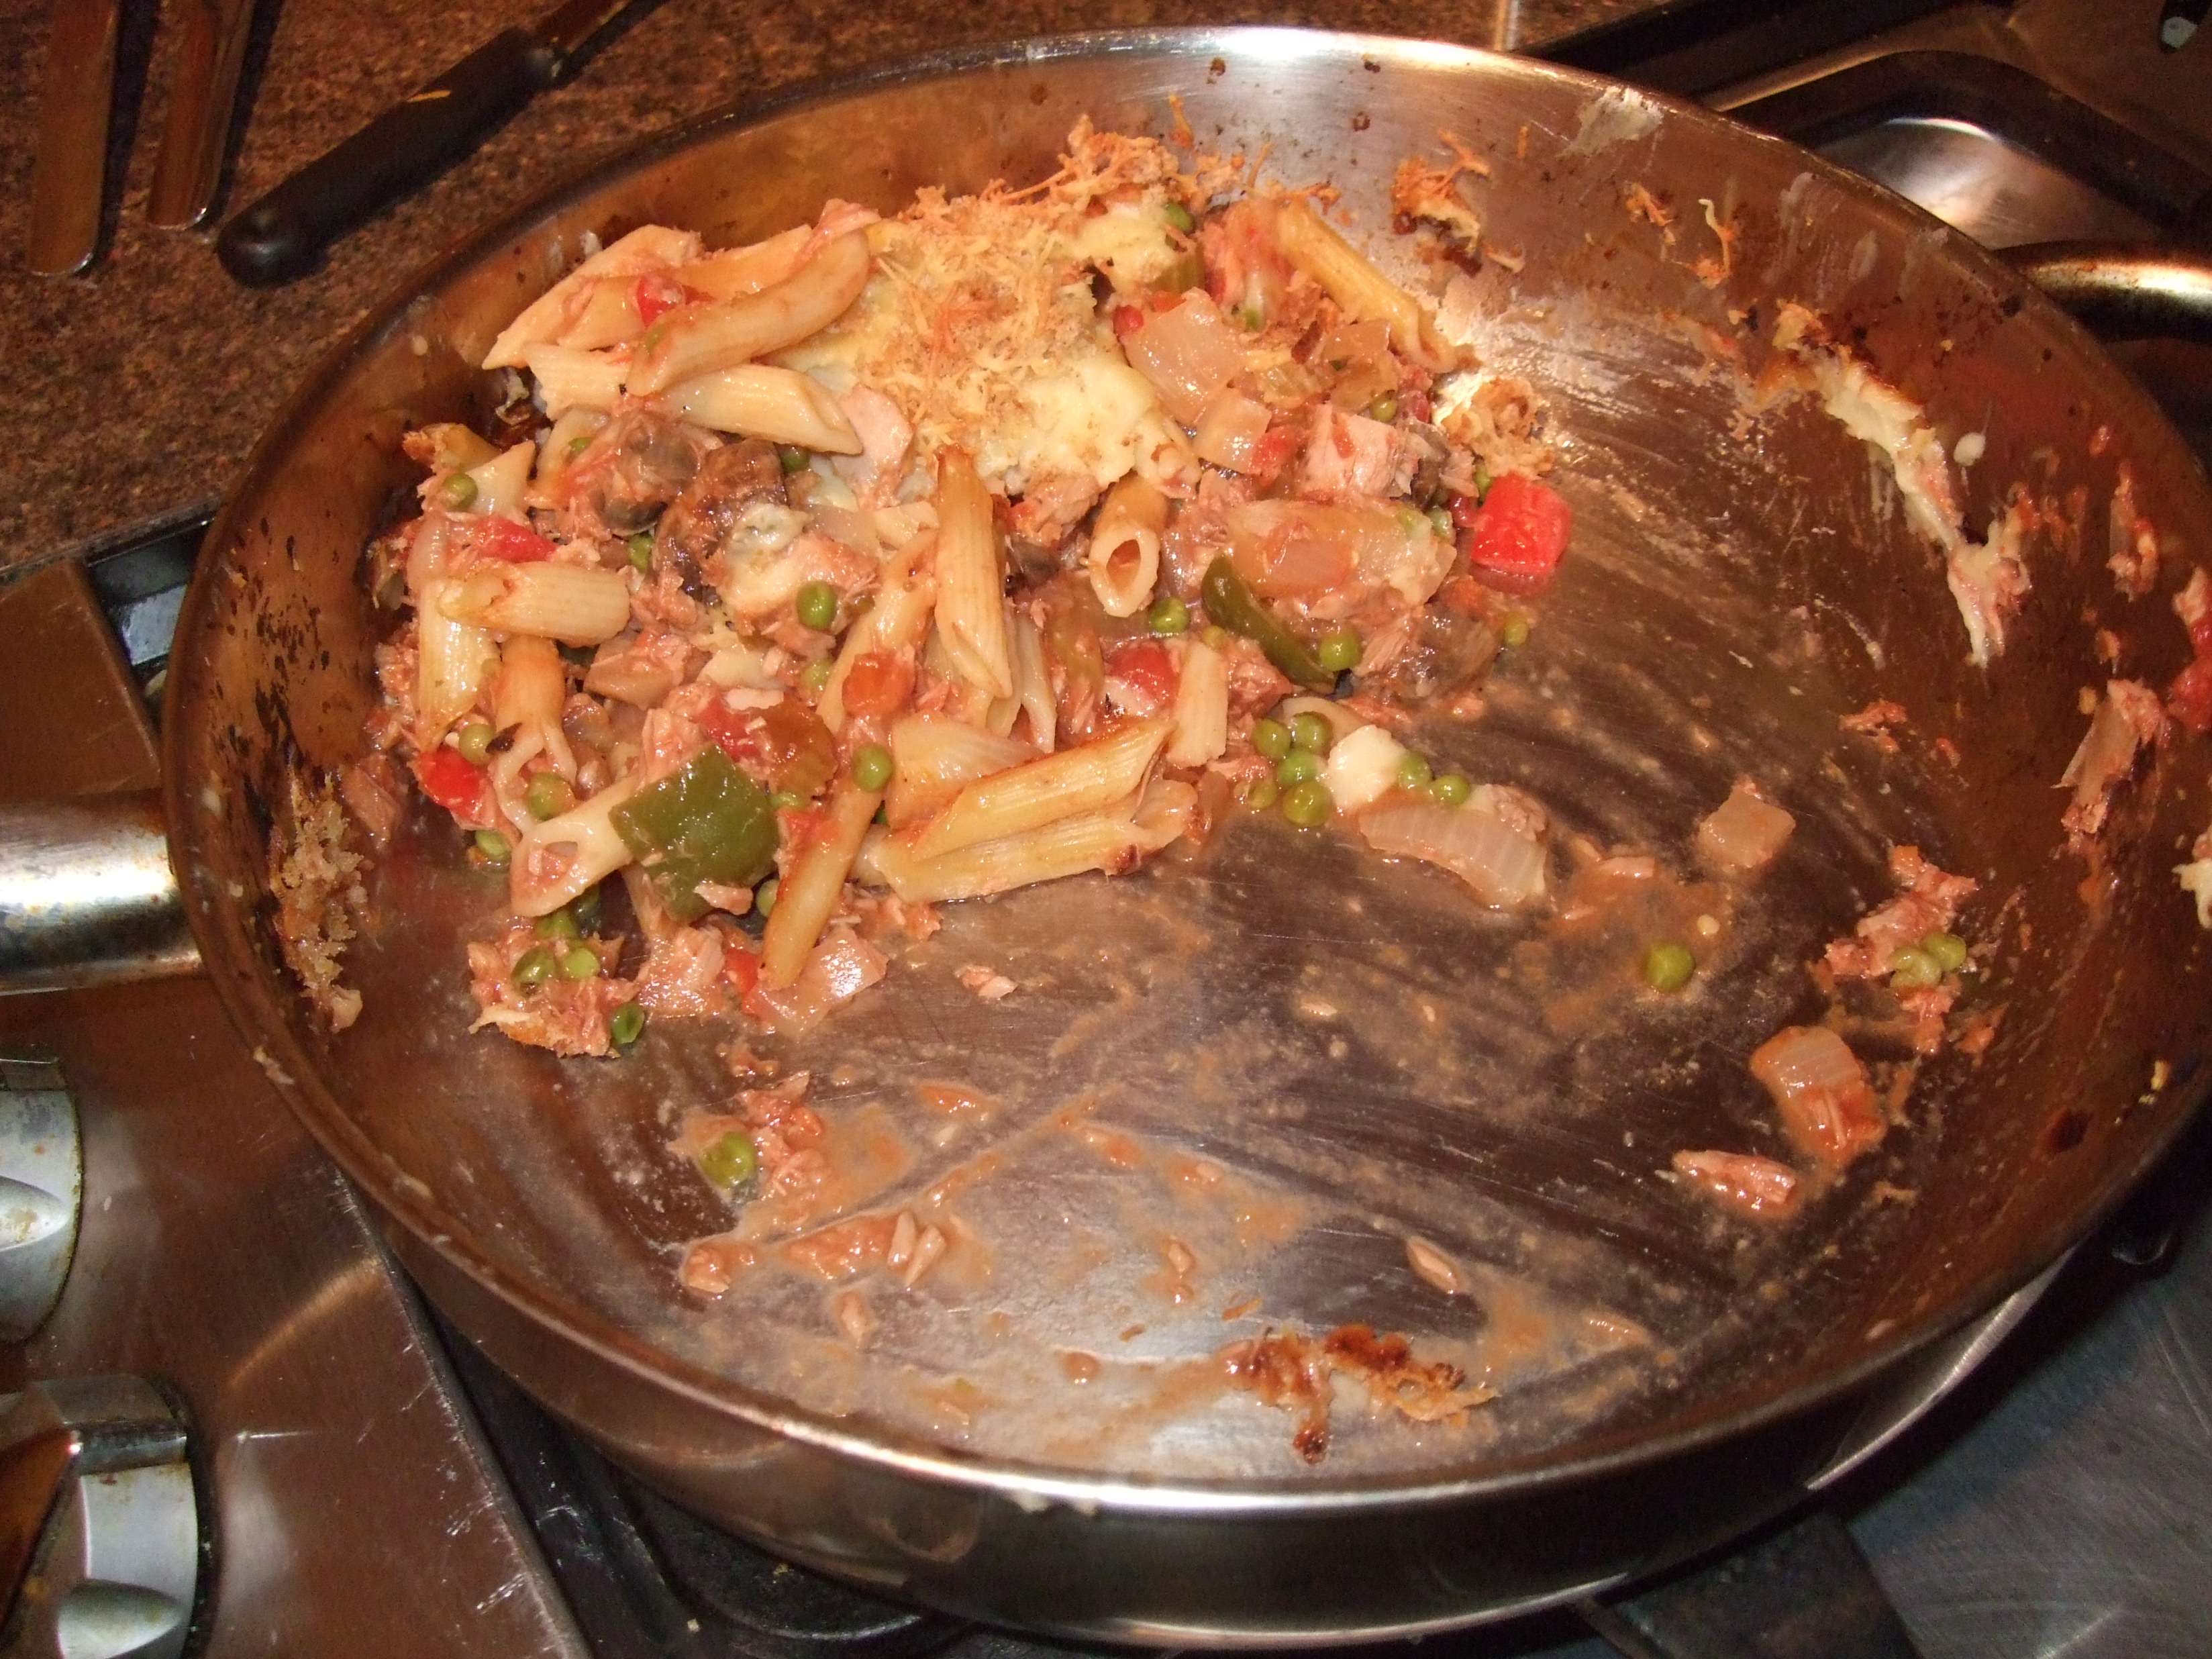 The remains of tuna and pasta bake